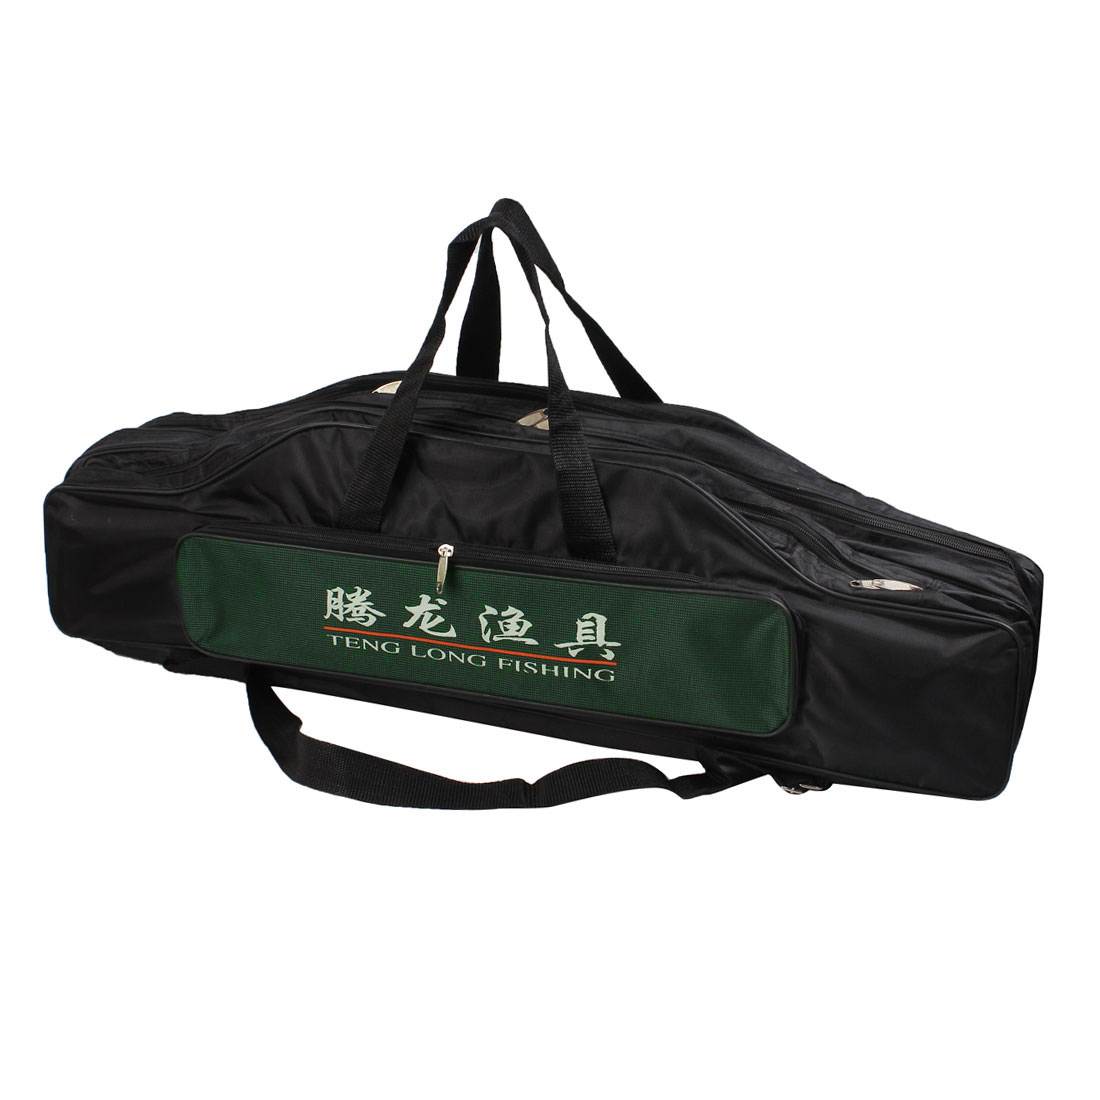 Zippered Style 5 Compartment Nylon Angling Fishing Rod Pole Bag Black Green